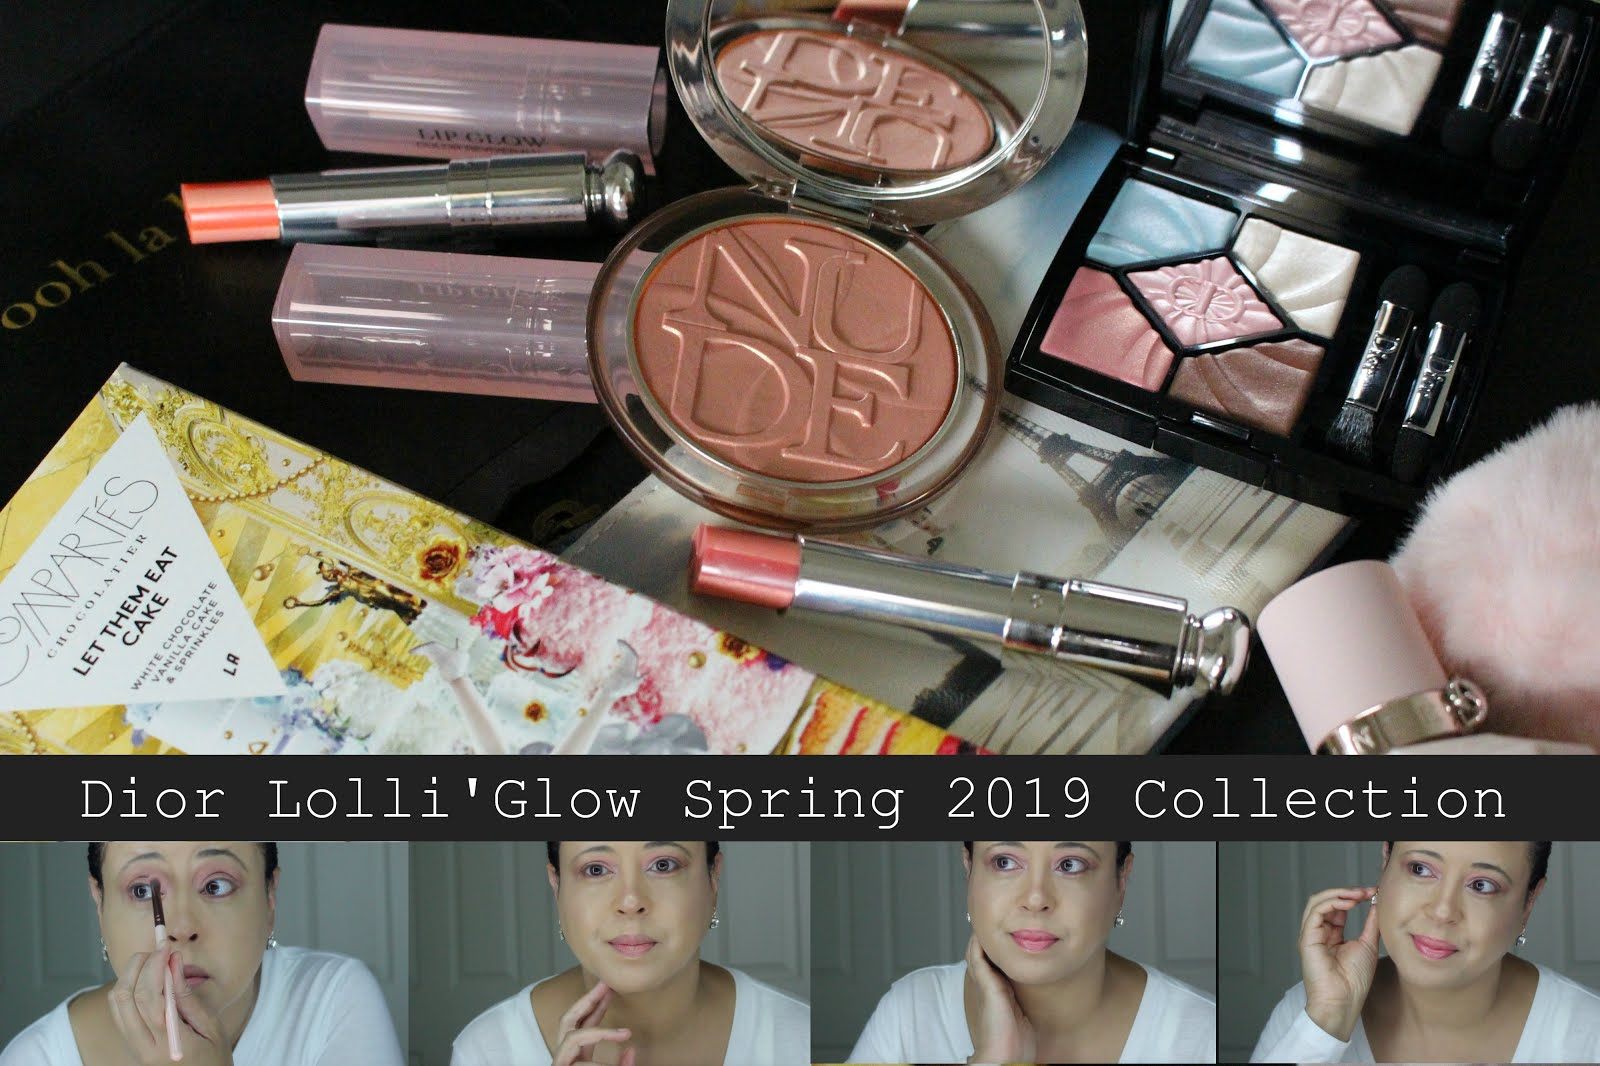 YouTube | Dior Lolli Glow